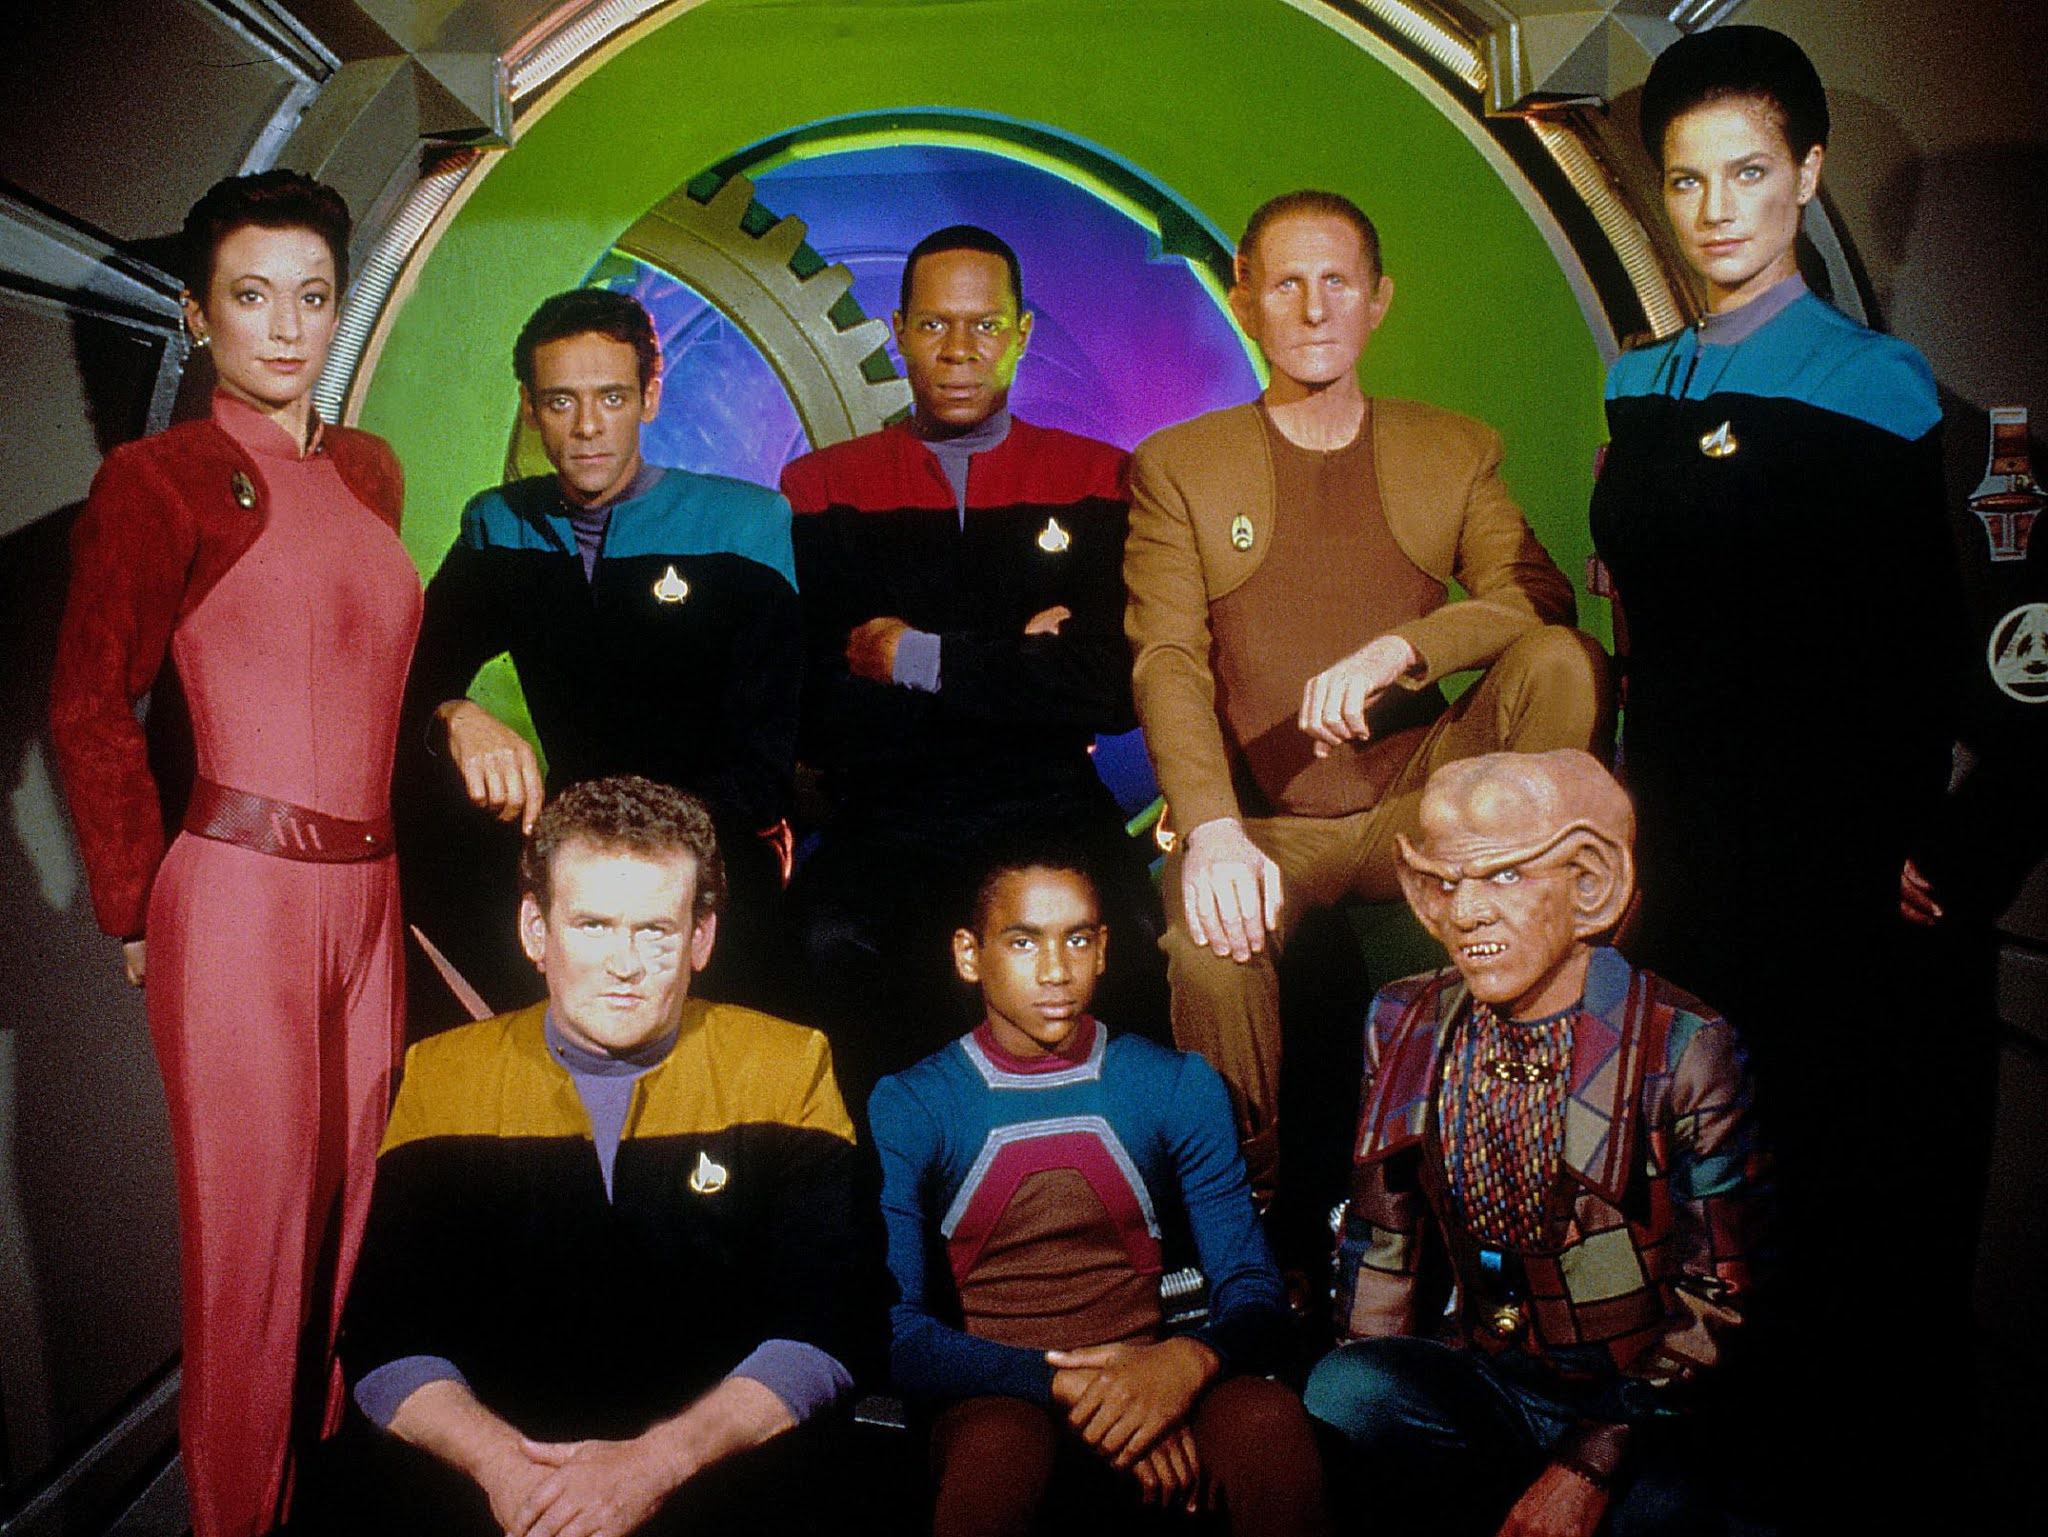 DS9 S2 Star Trek: All The Live-Action Movies & TV Shows, Ranked!